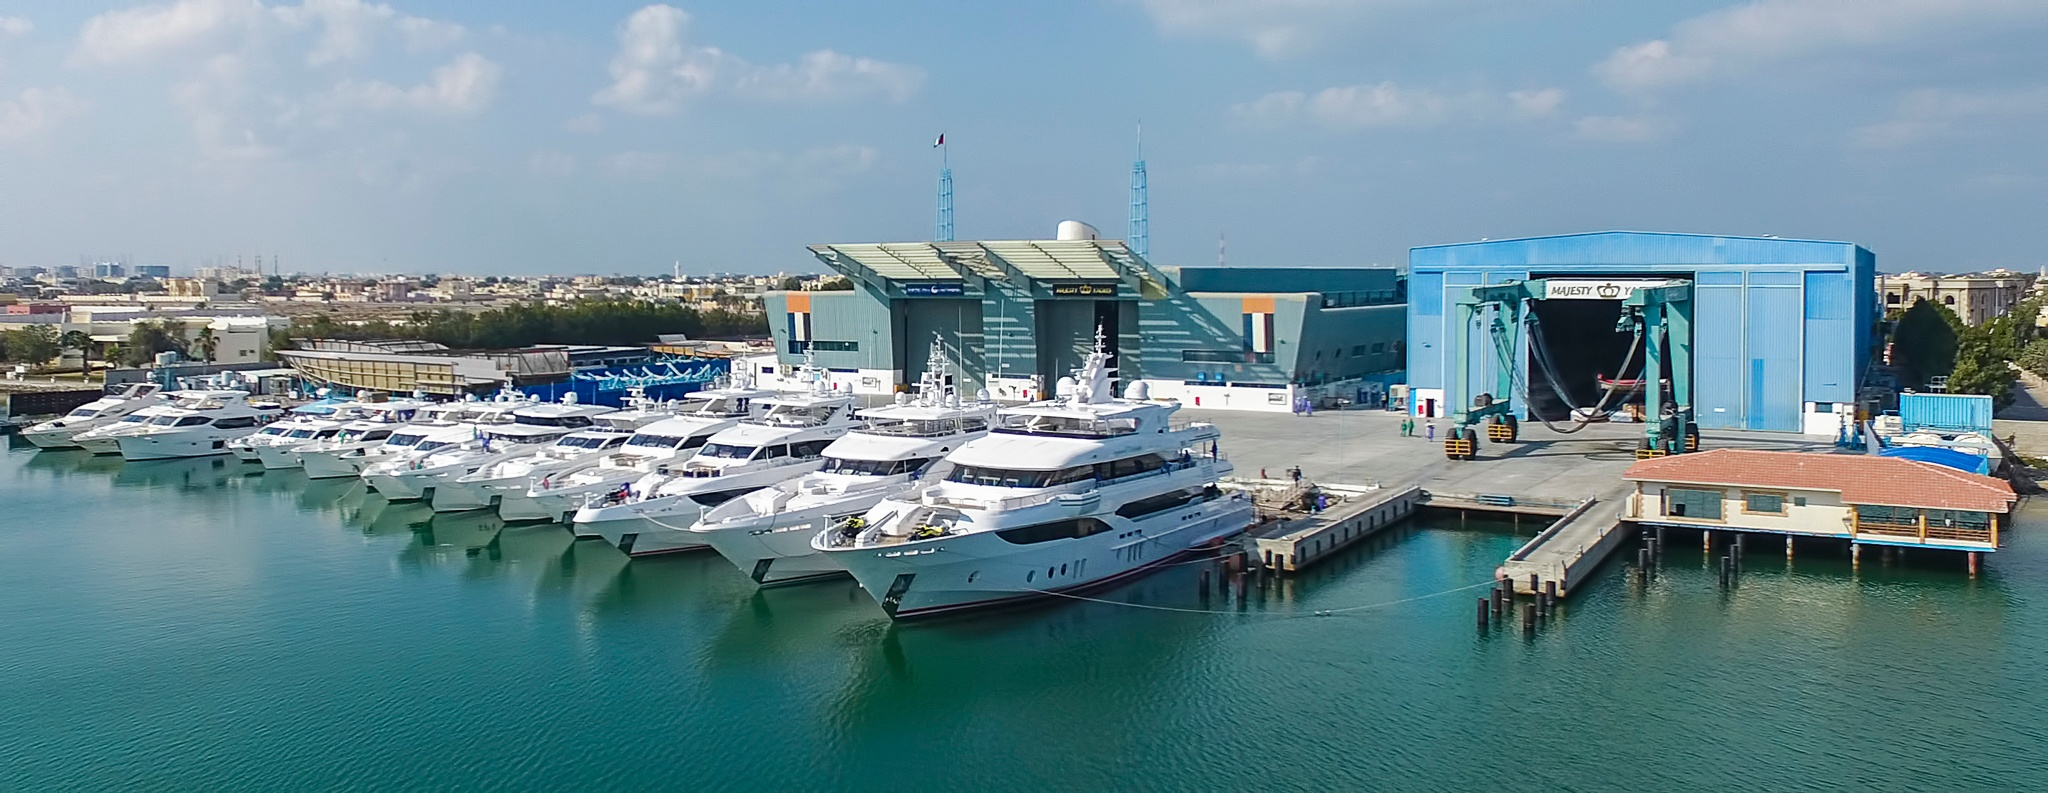 Gulf Craft Prepares its fleet for Dubai International Boat Show 2017 (4).jpg